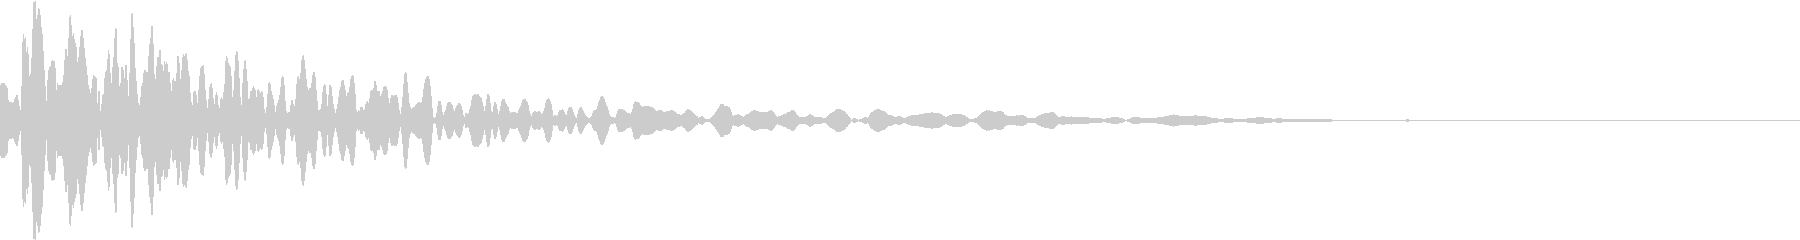 Dong (wood collision sound)'s unreproduced waveform